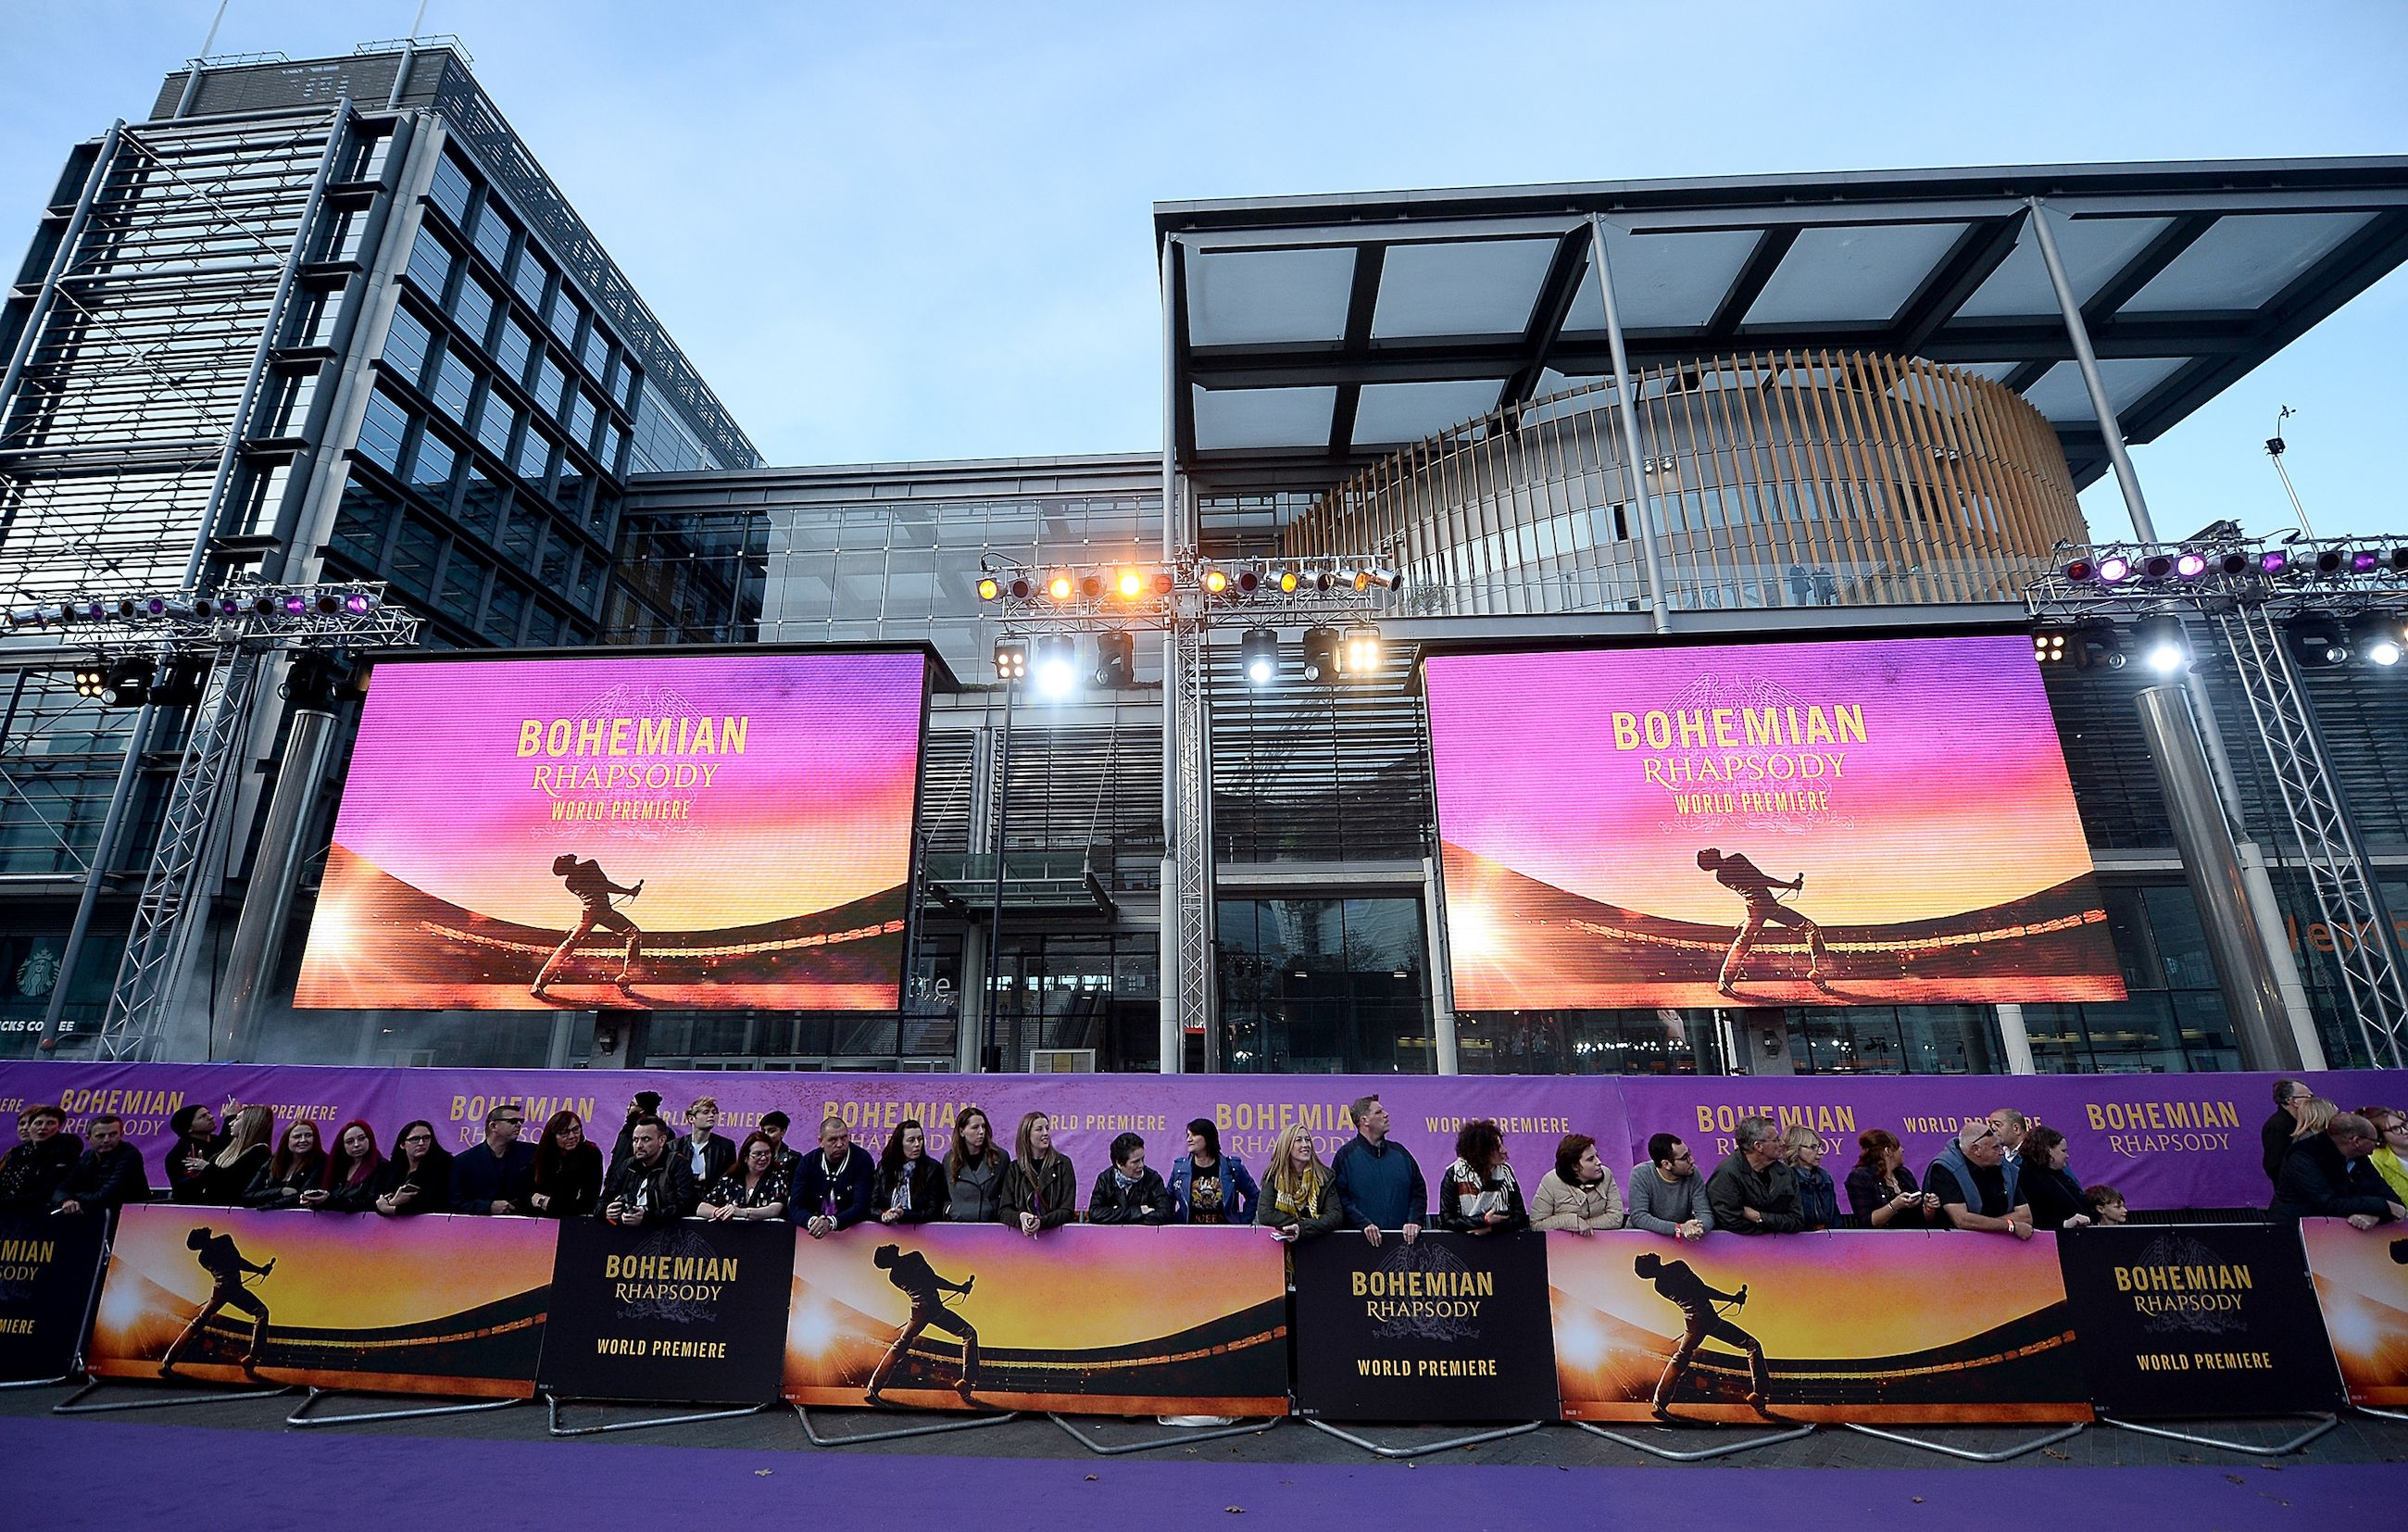 'Bohemian Rhapsody' World Premiere At The SSE Arena Wembley